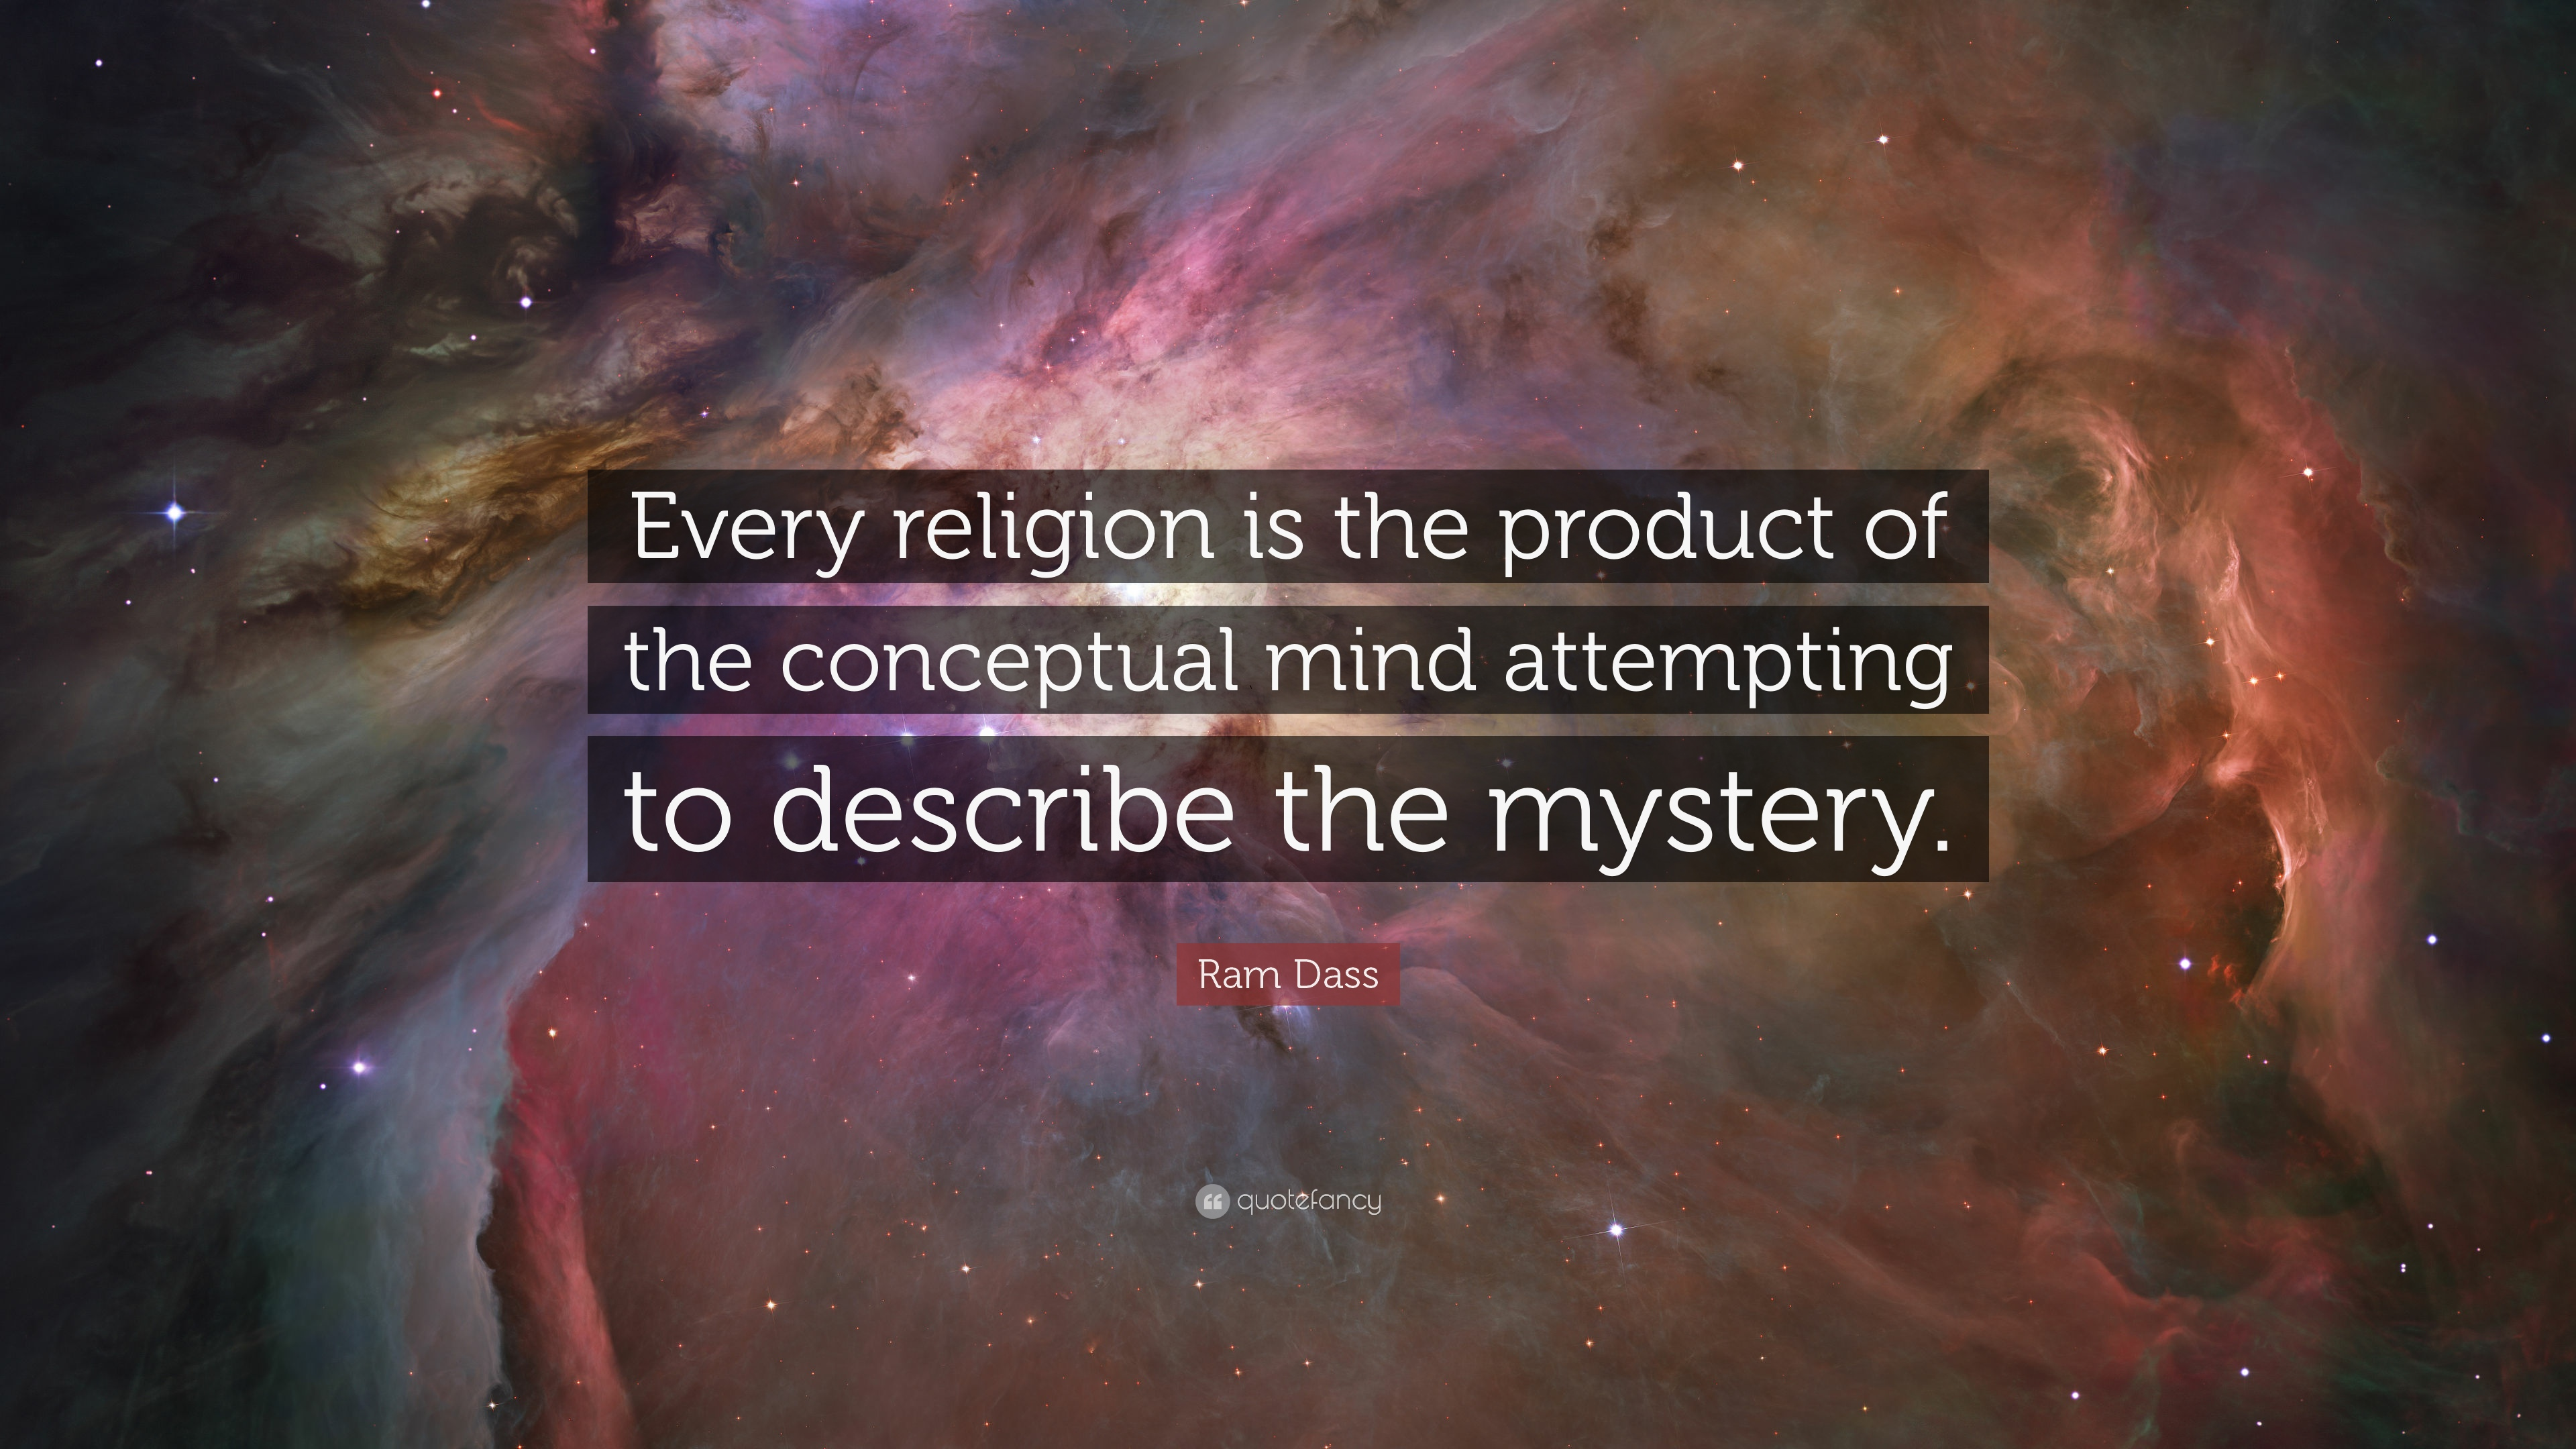 Ram Dass Quote Every Religion Is The Product Of The Conceptual Mind Attempting To Describe The